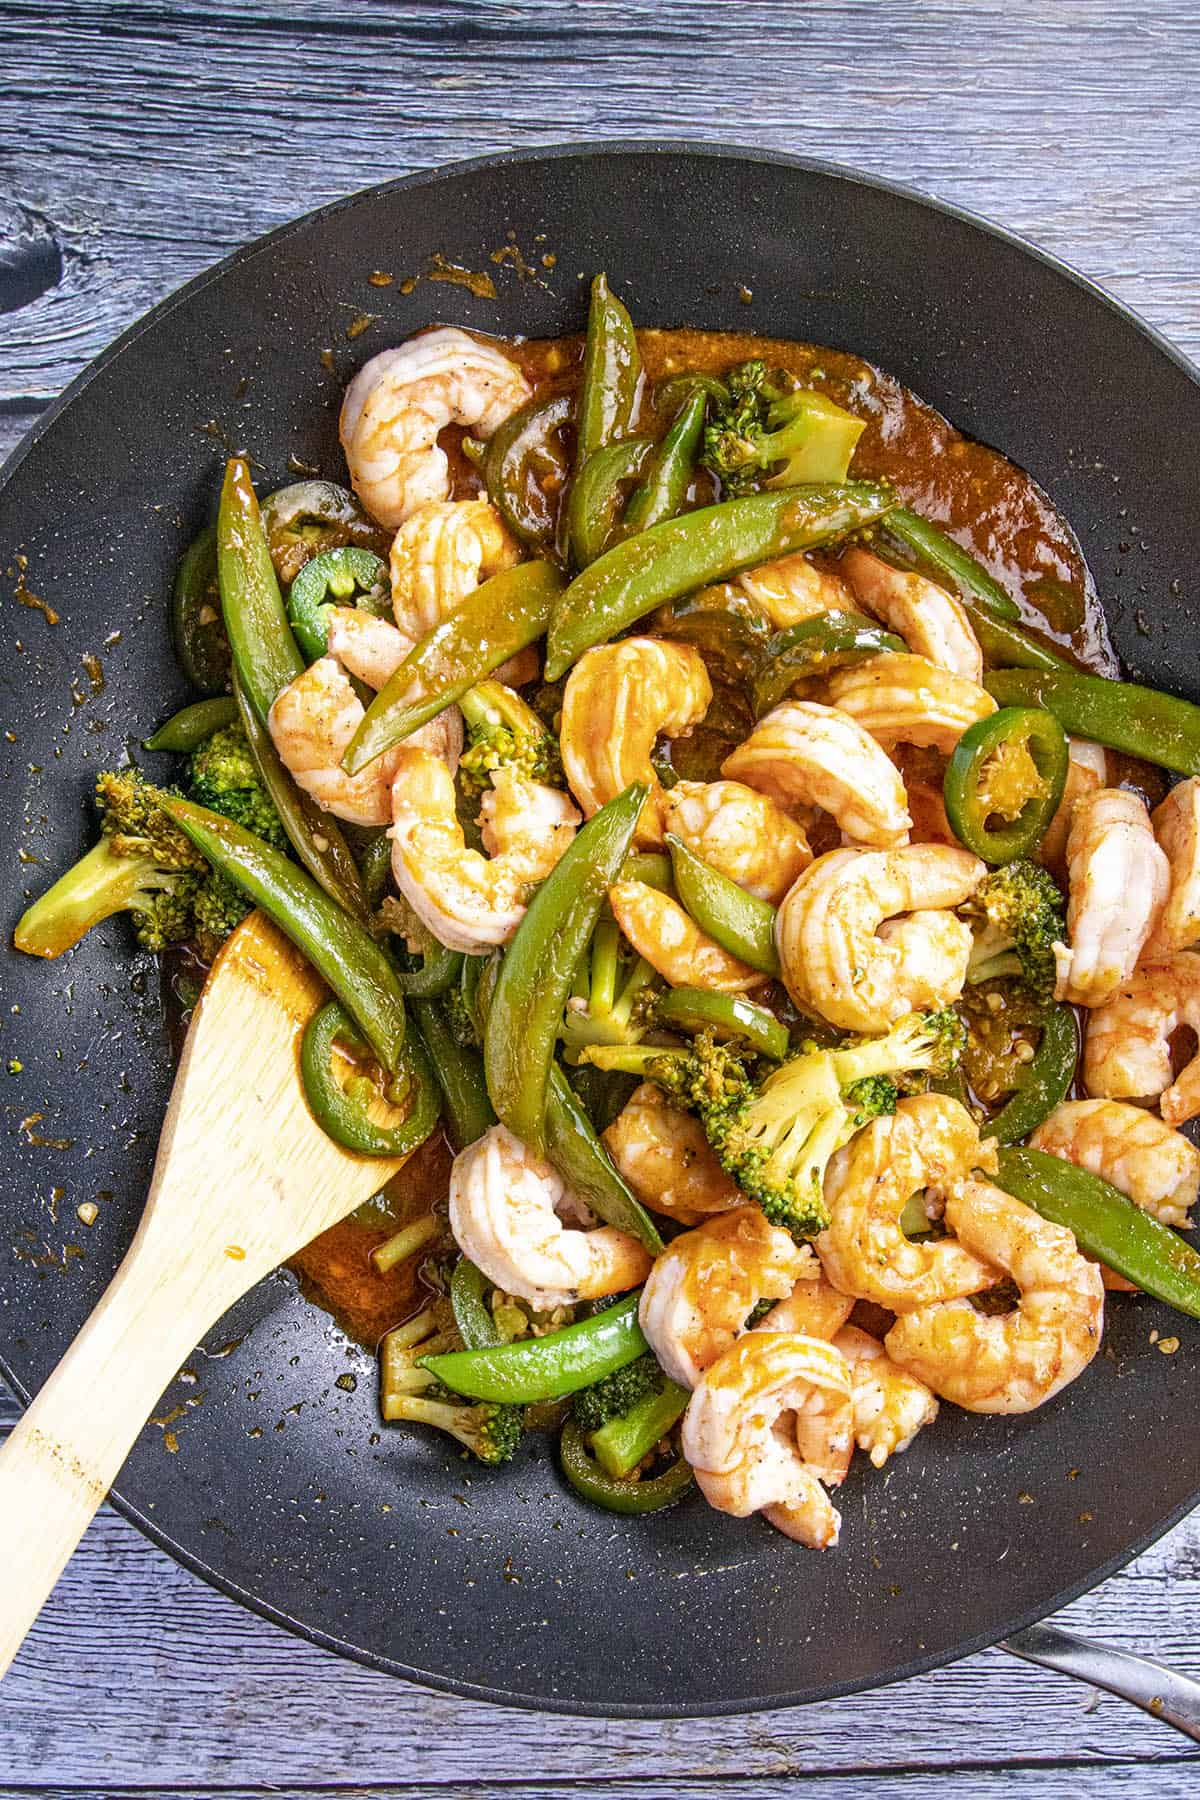 Mixing in the spicy shrimp stir fry ingredients together in a wok